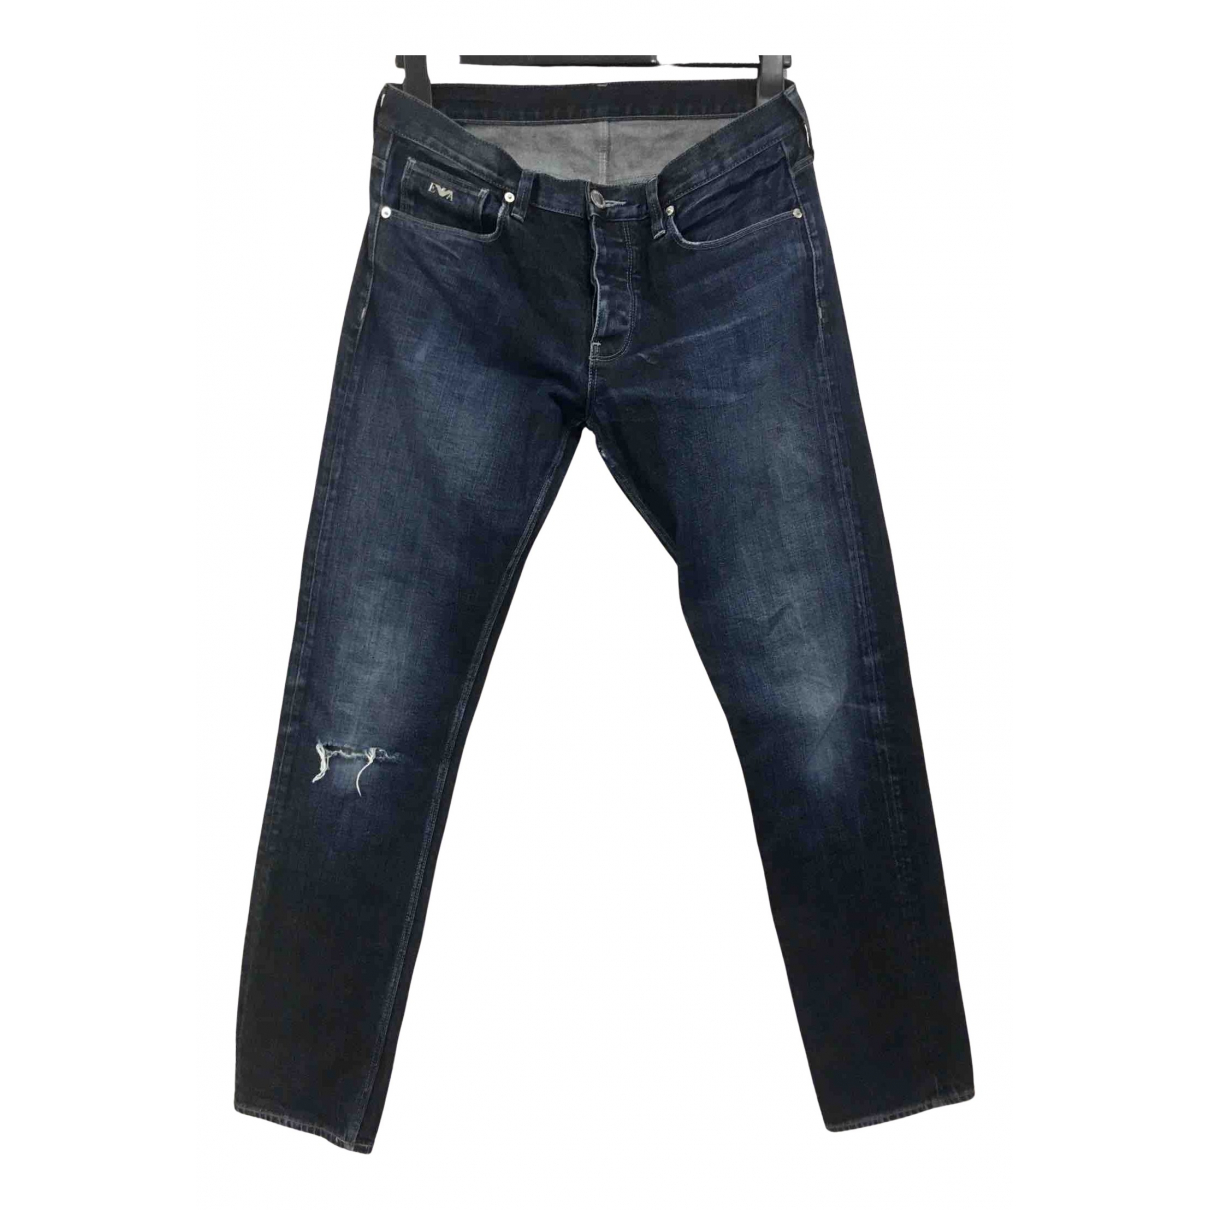 Emporio Armani N Blue Cotton - elasthane Jeans for Men 32 US